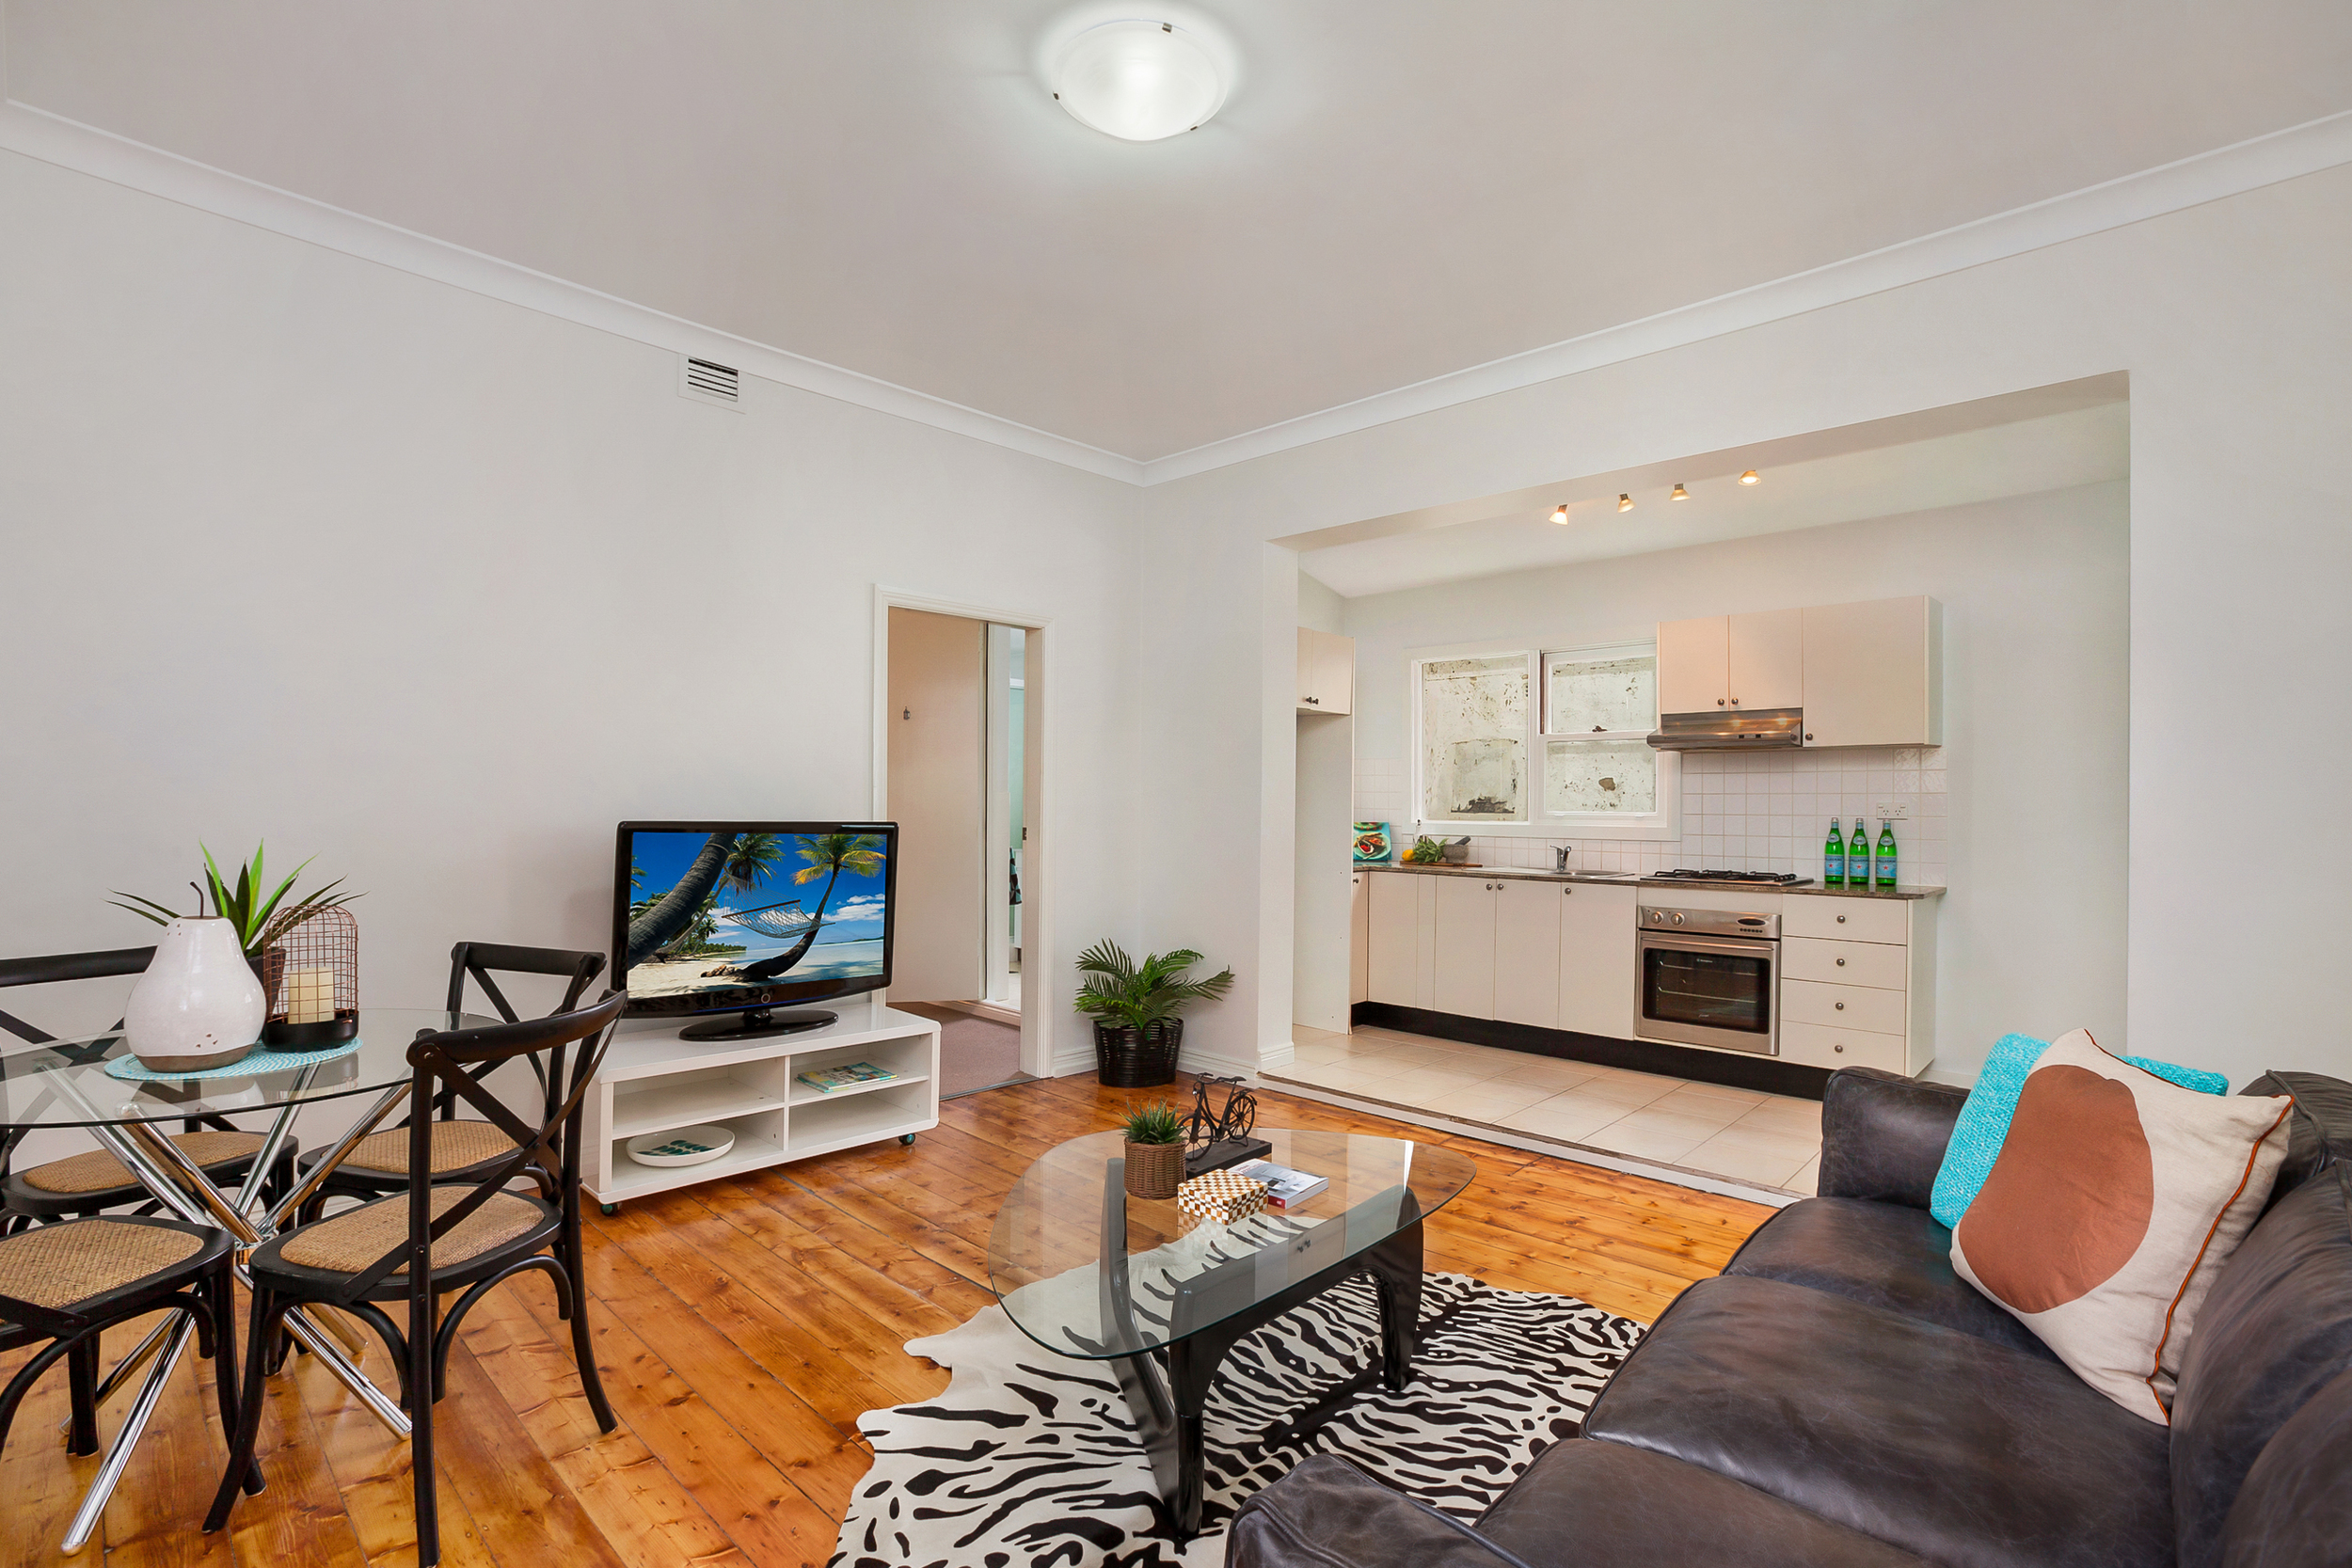 Middleton-St-3-24-Petersham-Living2.jpg